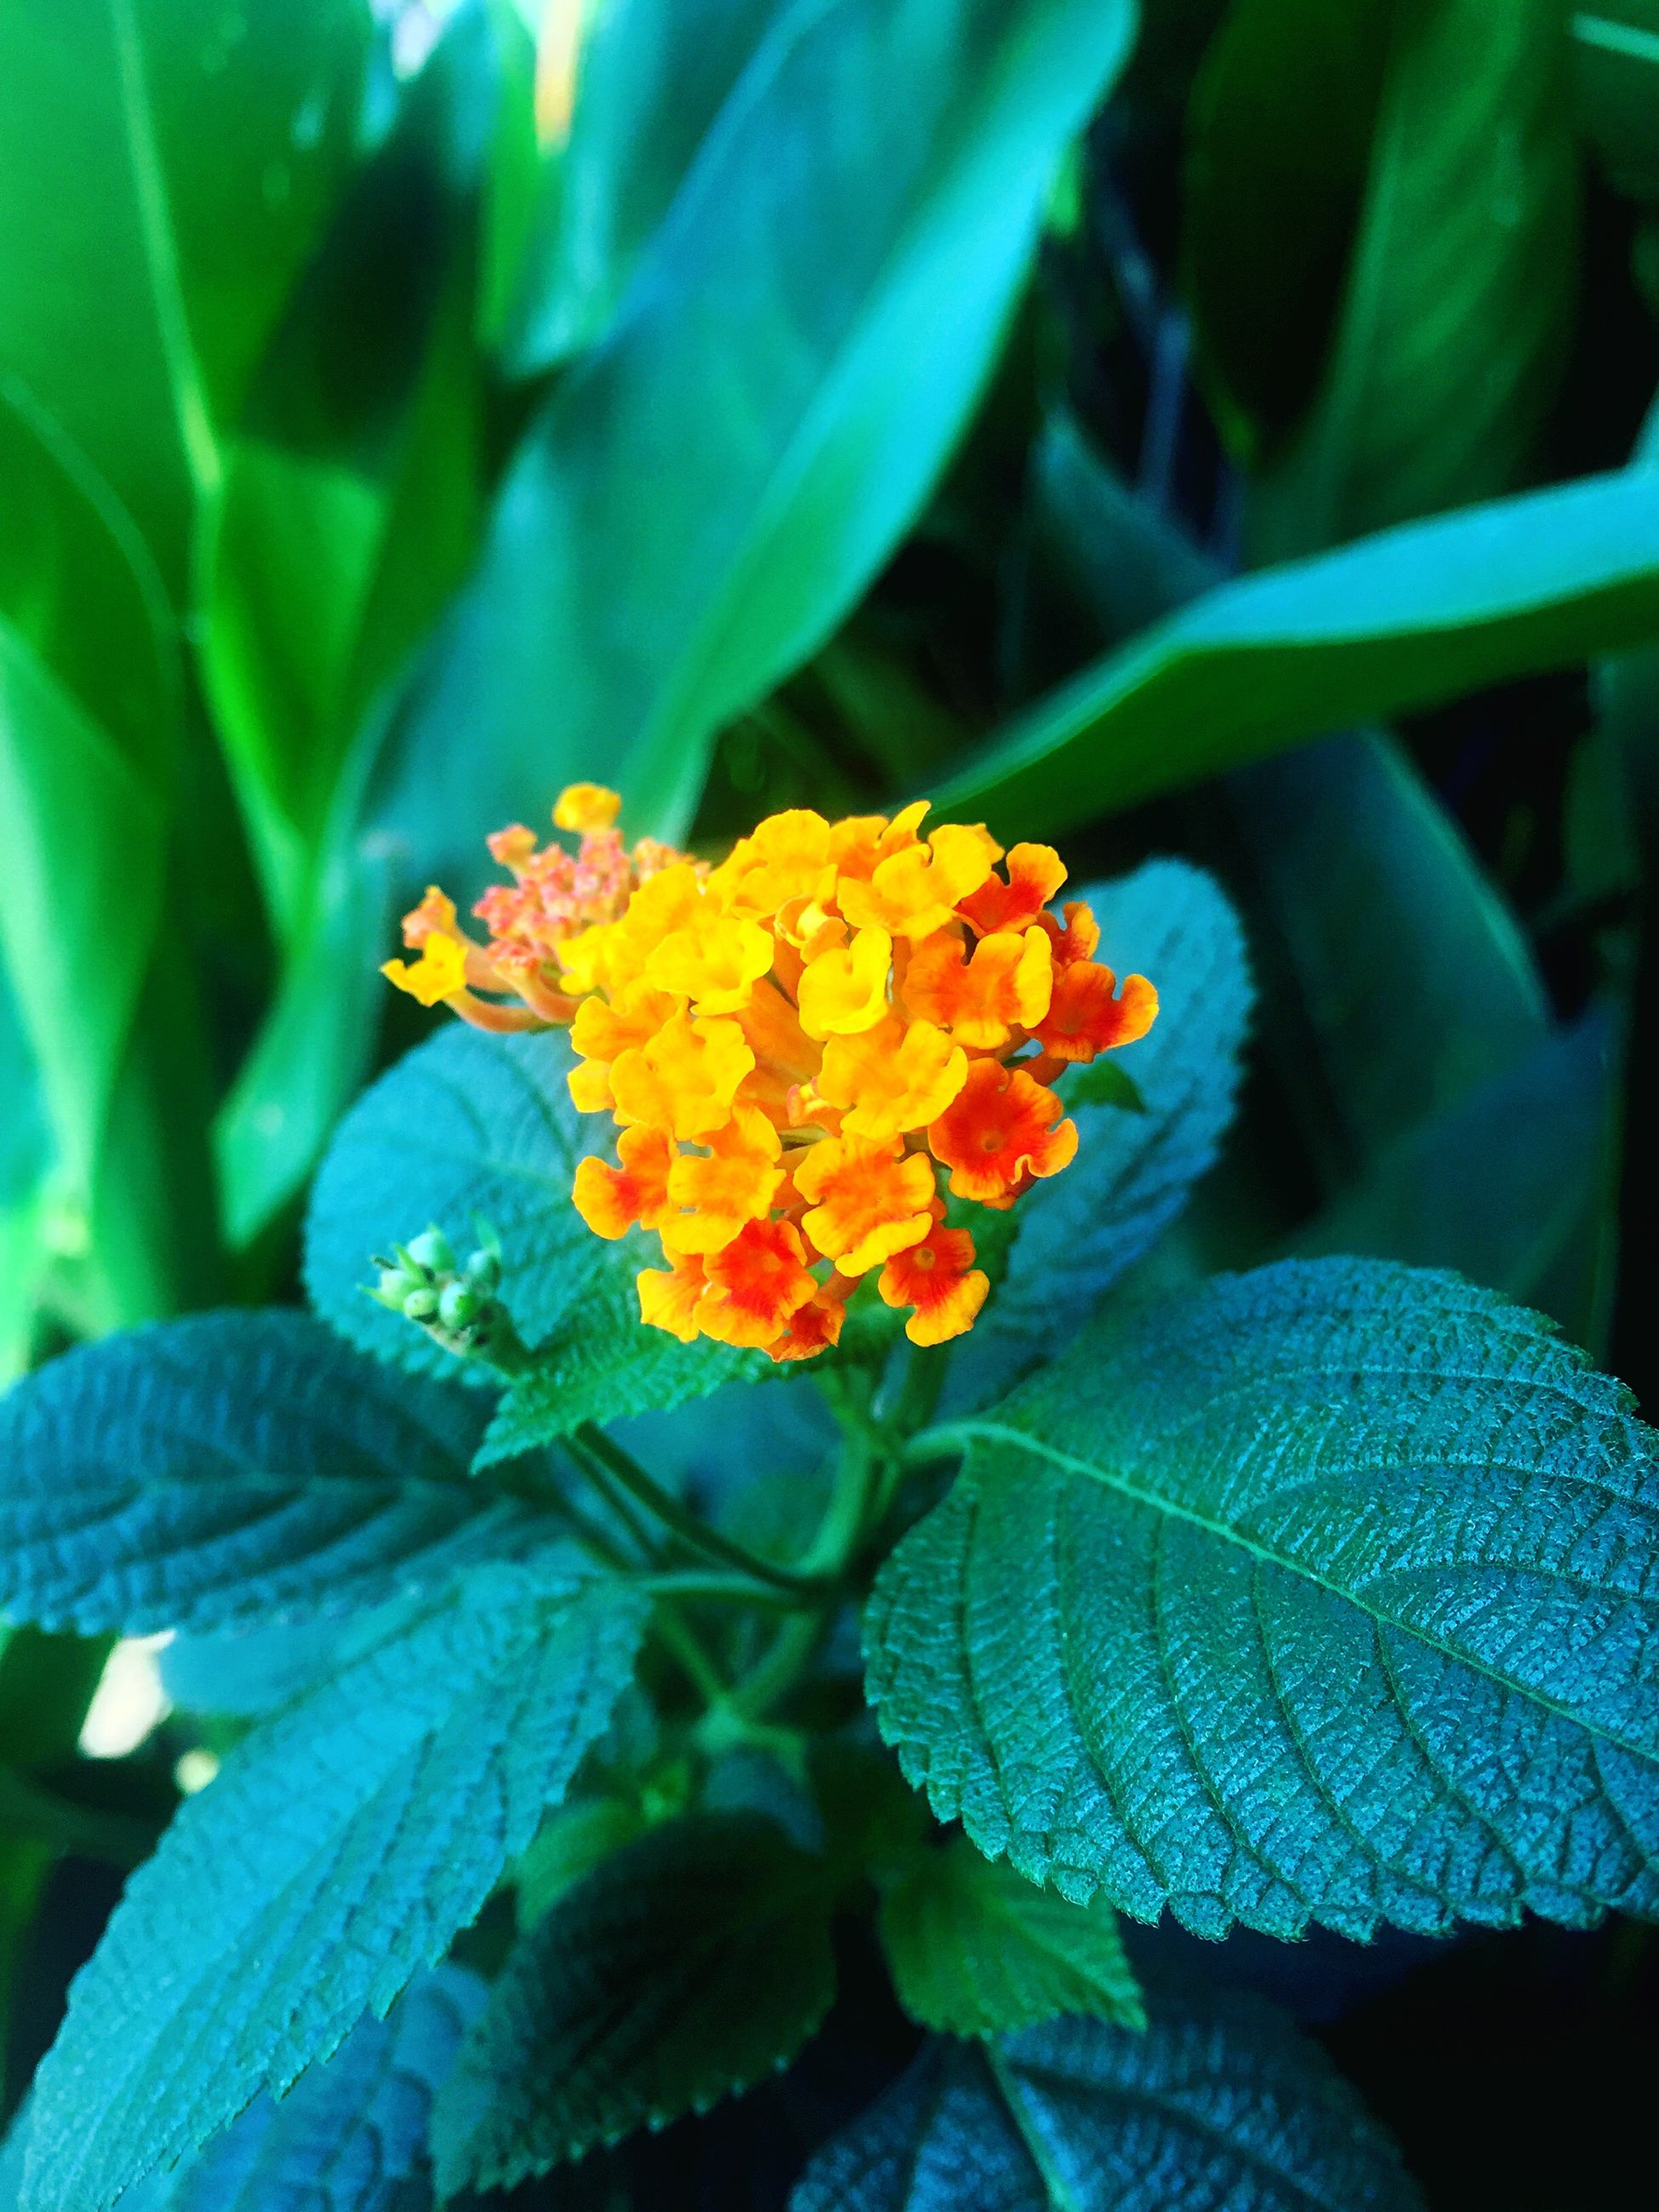 flower, fragility, freshness, beauty in nature, nature, petal, blooming, growth, flower head, plant, focus on foreground, leaf, green color, close-up, lantana camara, no people, day, zinnia, outdoors